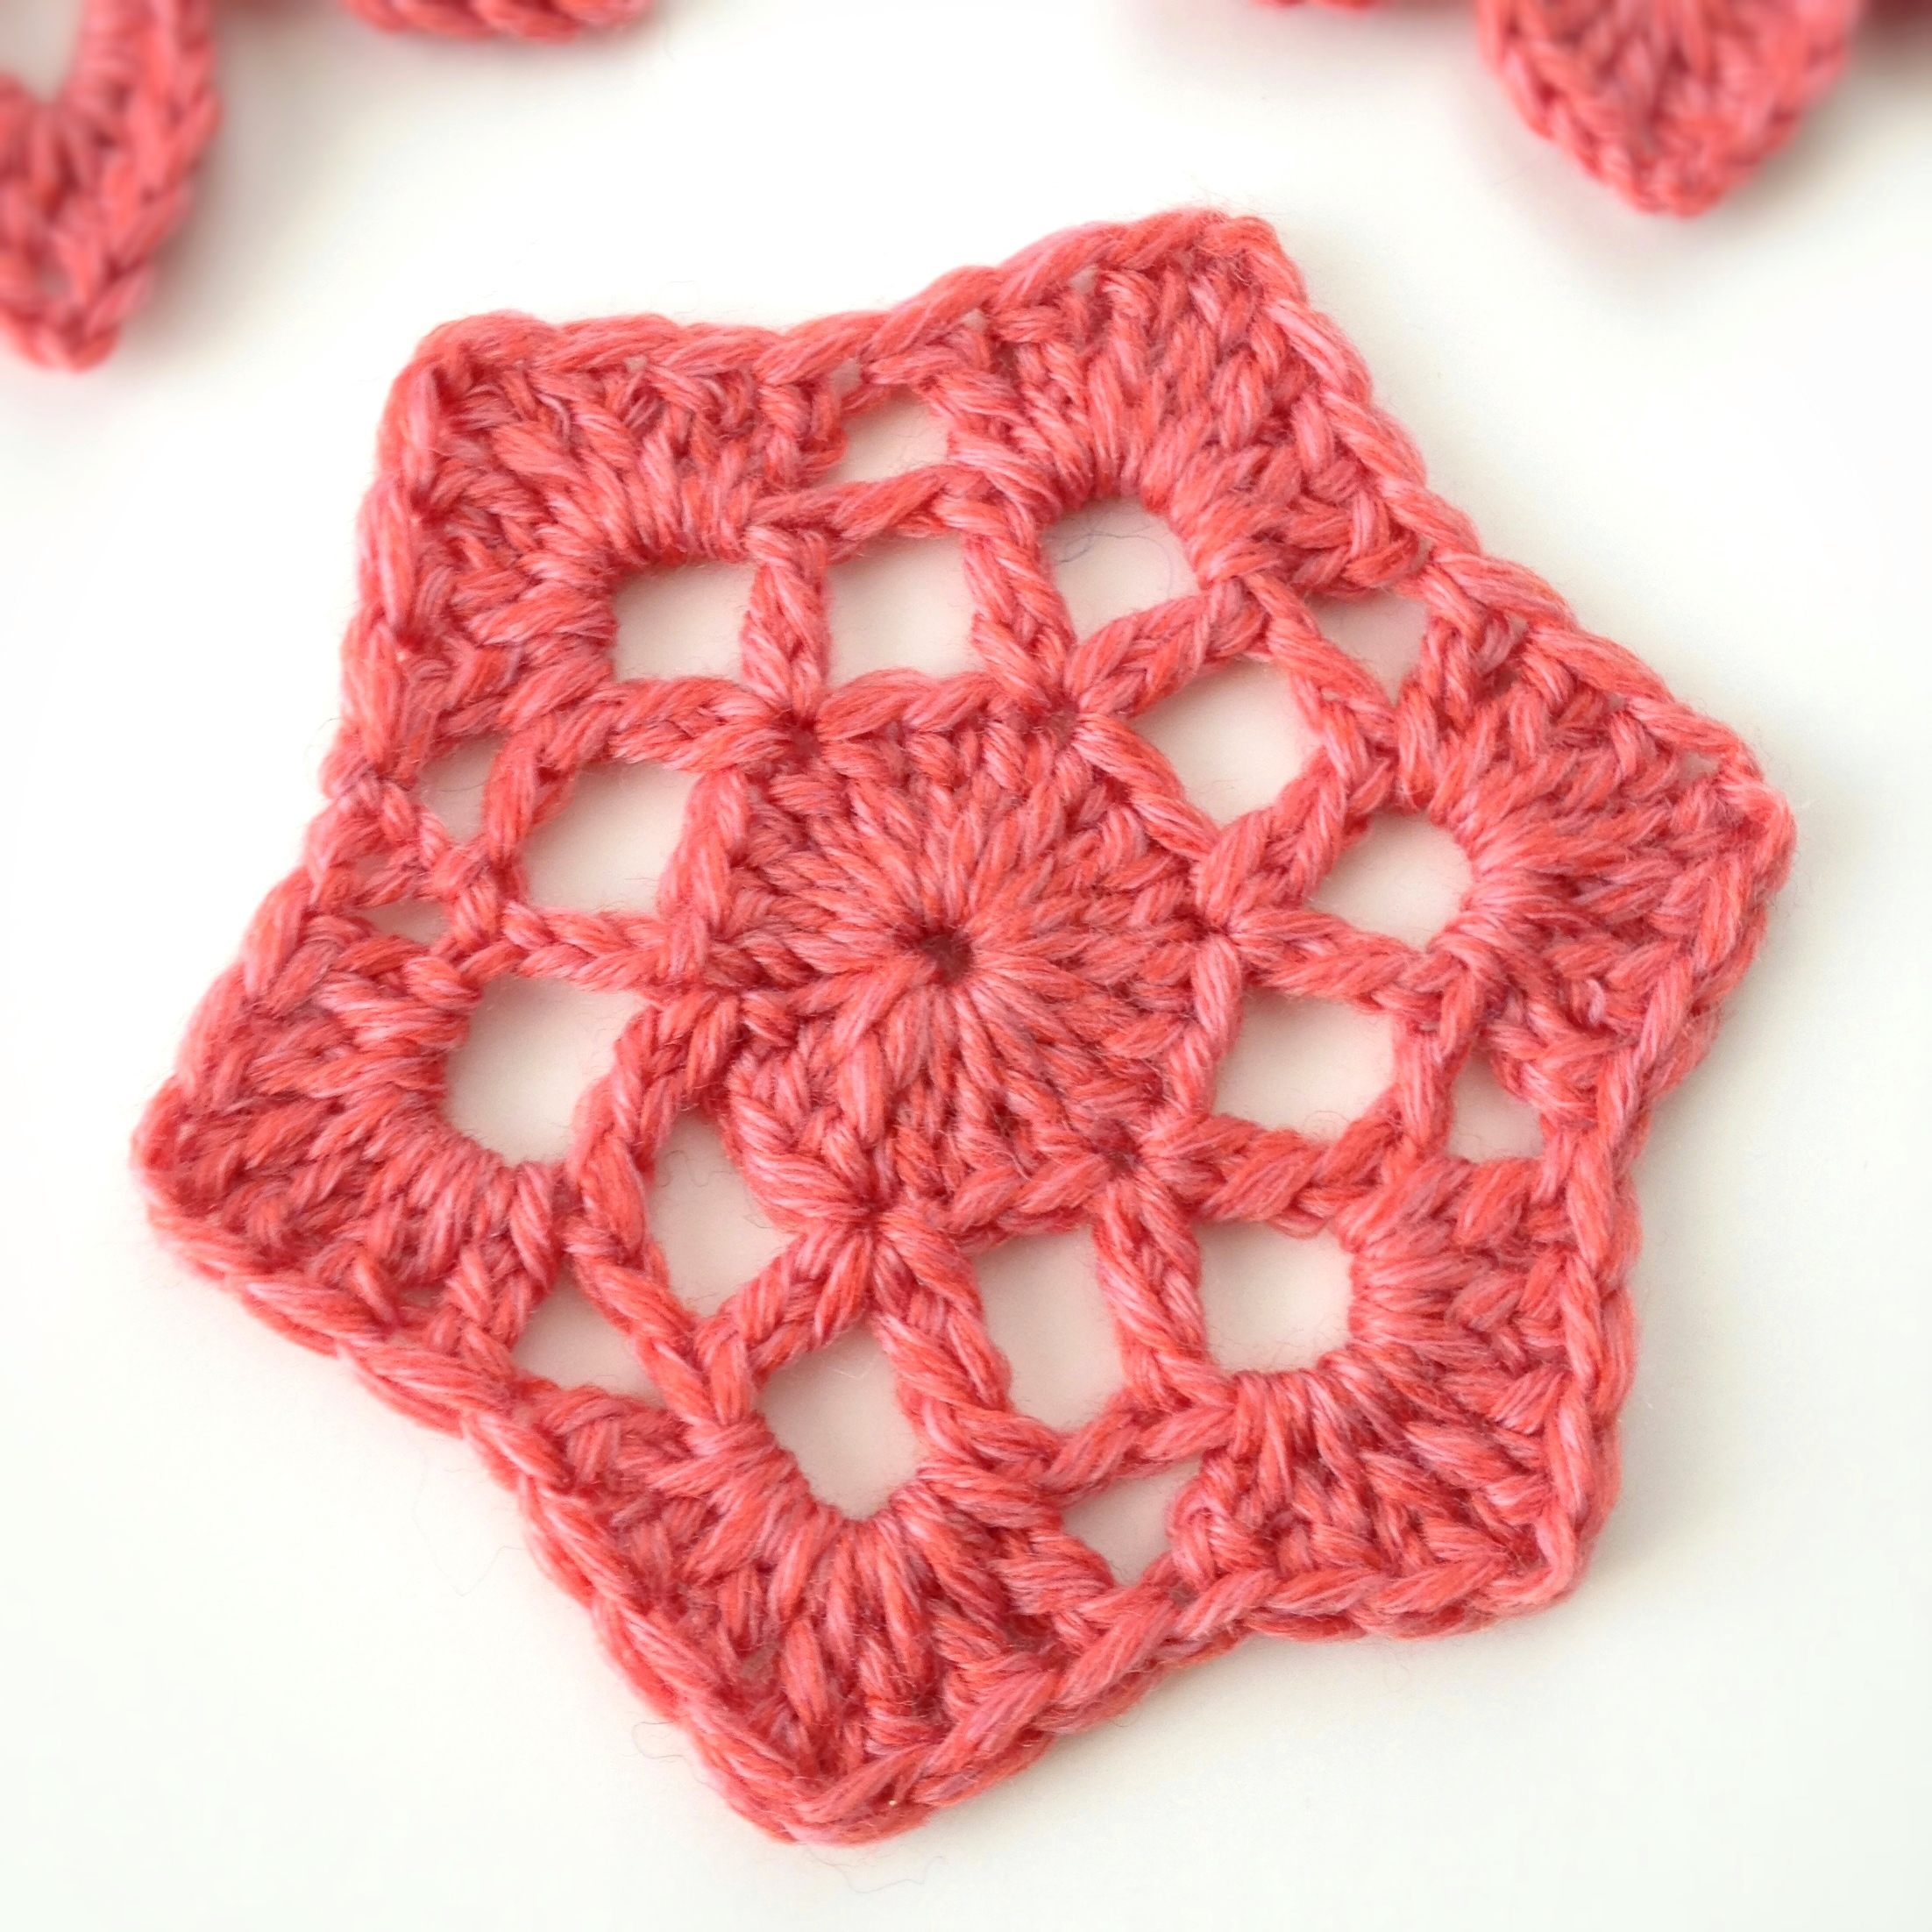 Video How To Crochet : Crochet motif #53 from ?Beyond the Square Crochet Motifs?